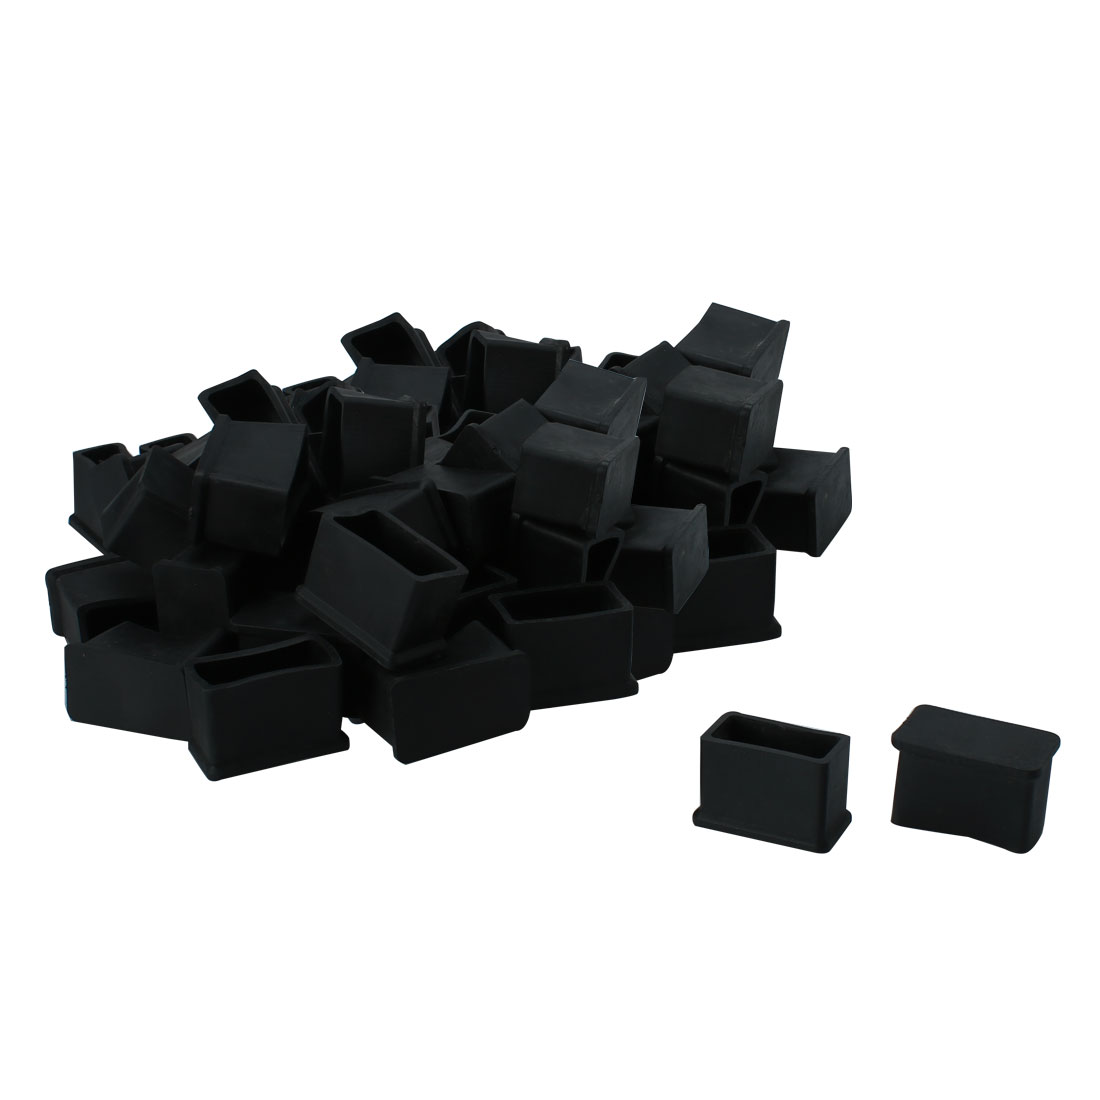 "Cabinet Leg Caps End Tip Home Furniture Protector 50pcs 0.59"" x 1.18""(15 x 30mm)"